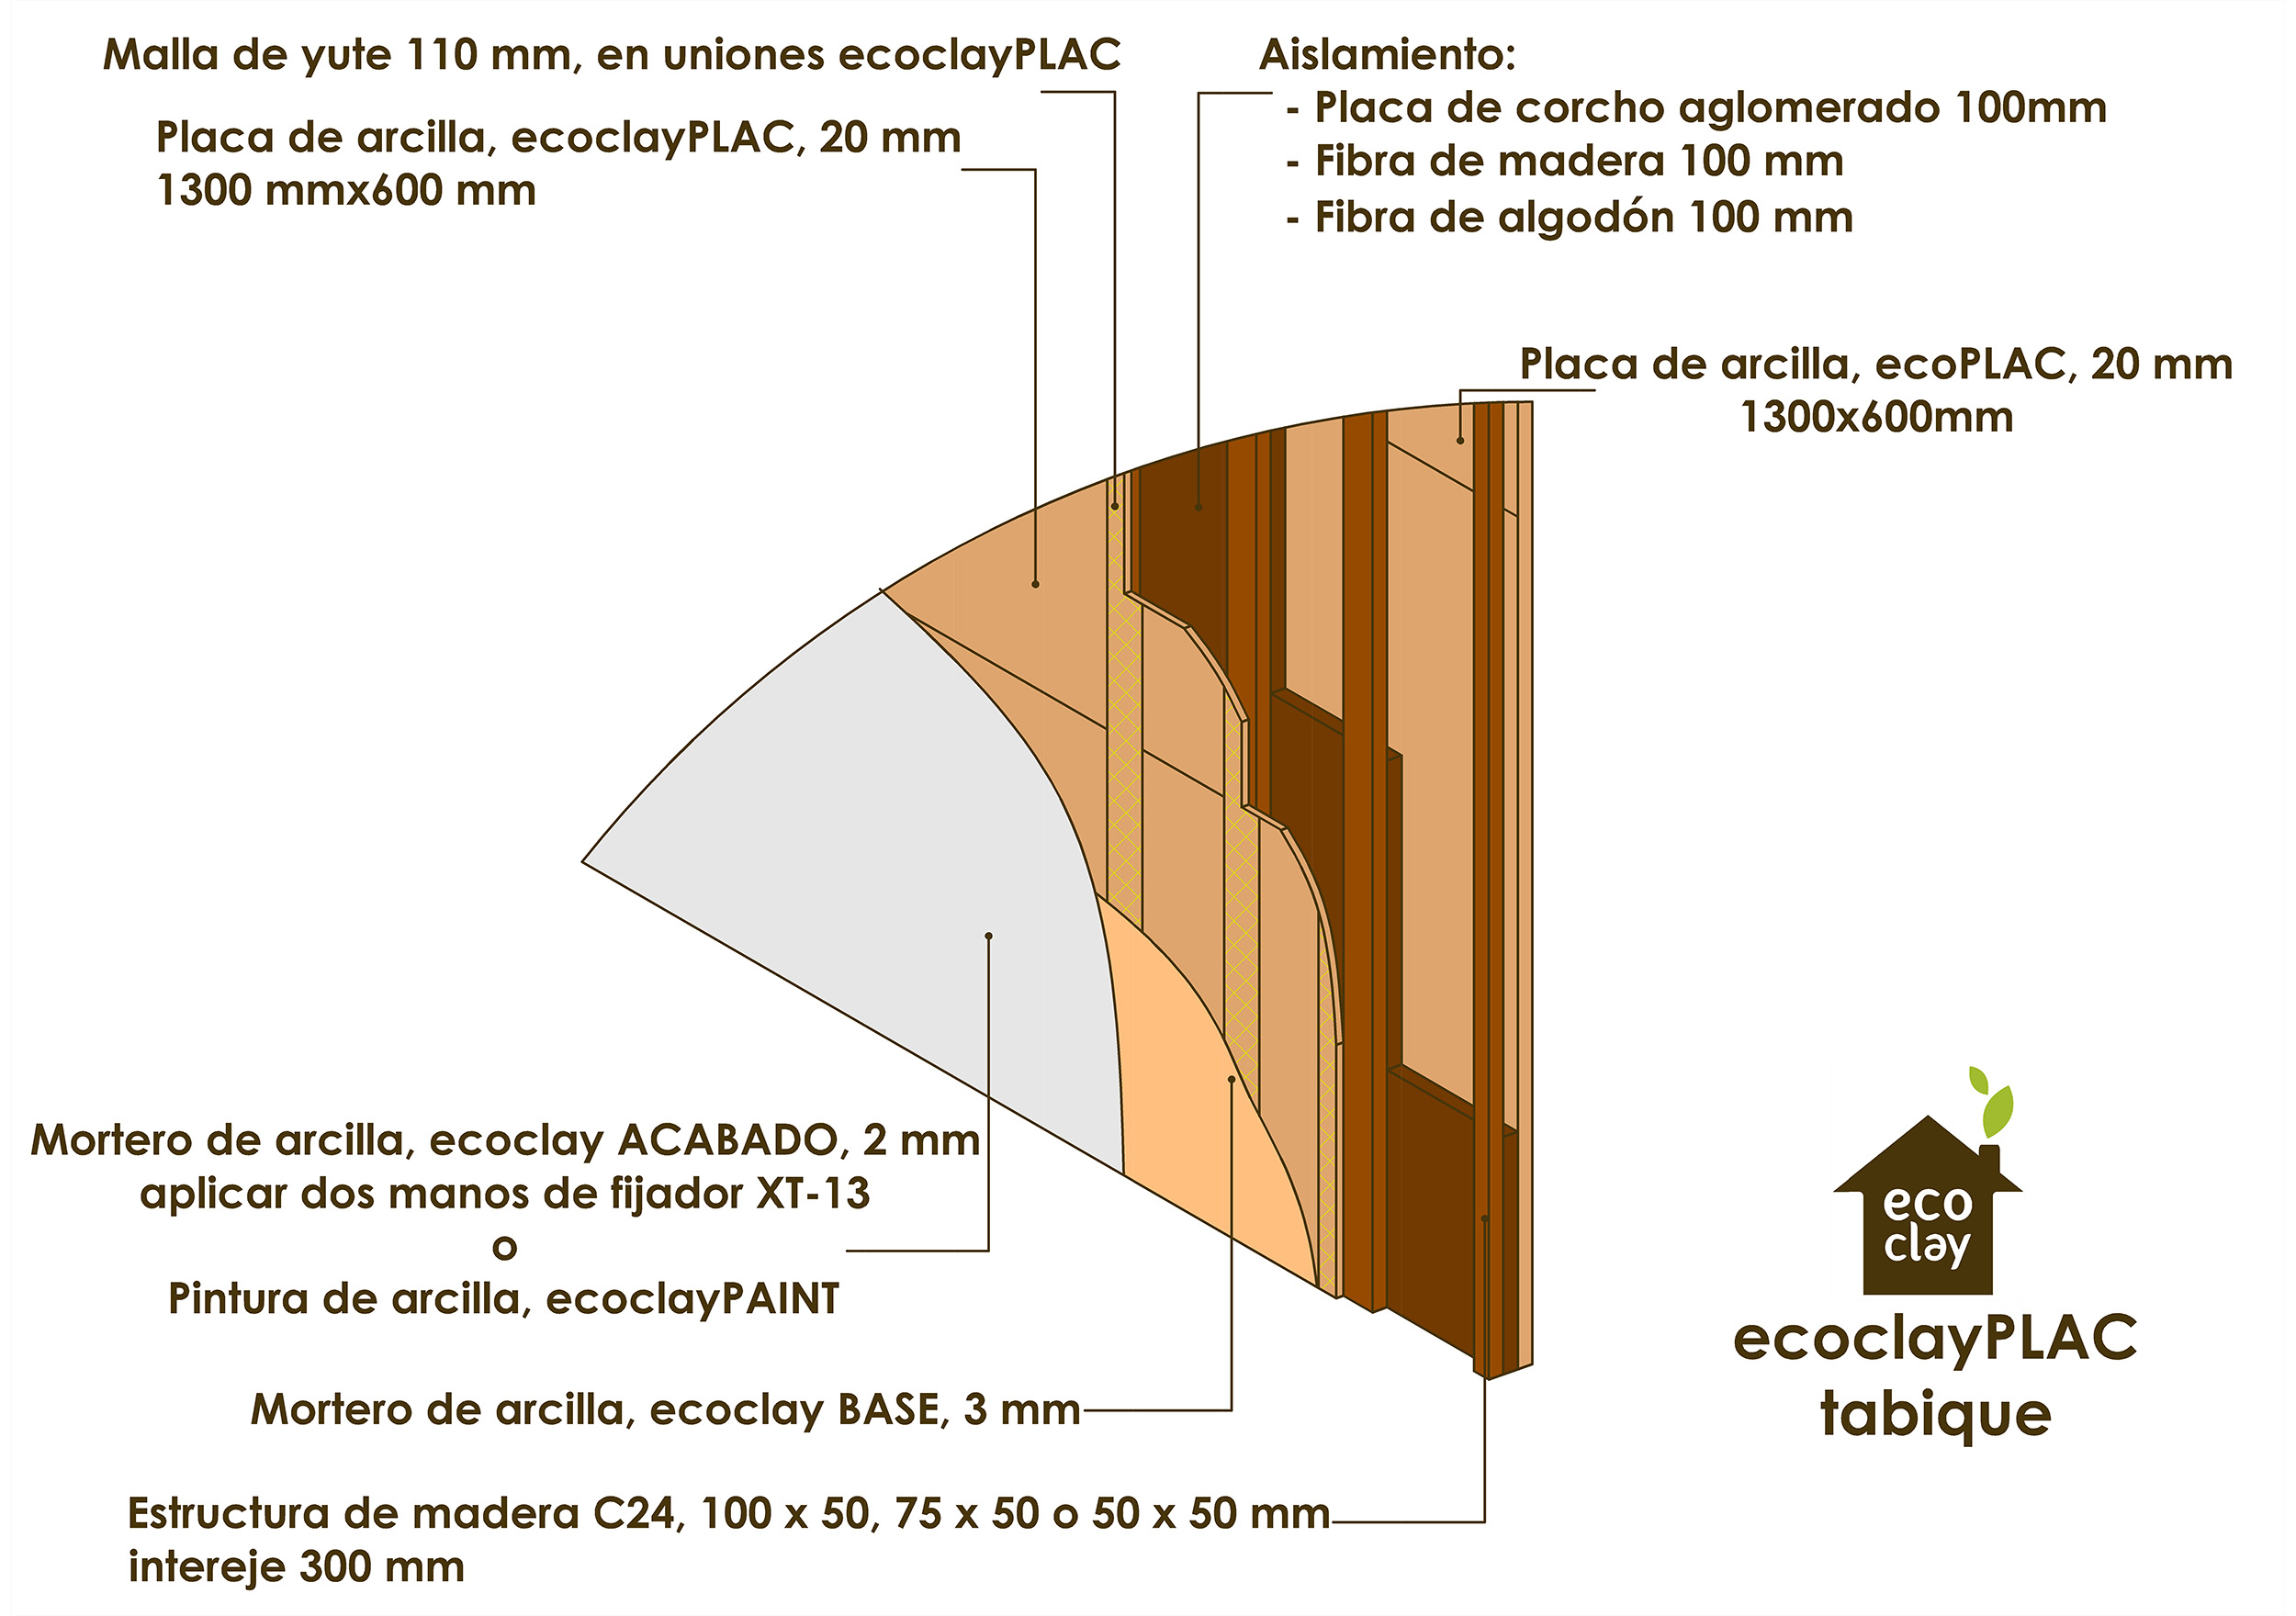 ecoclayPLAC tabique